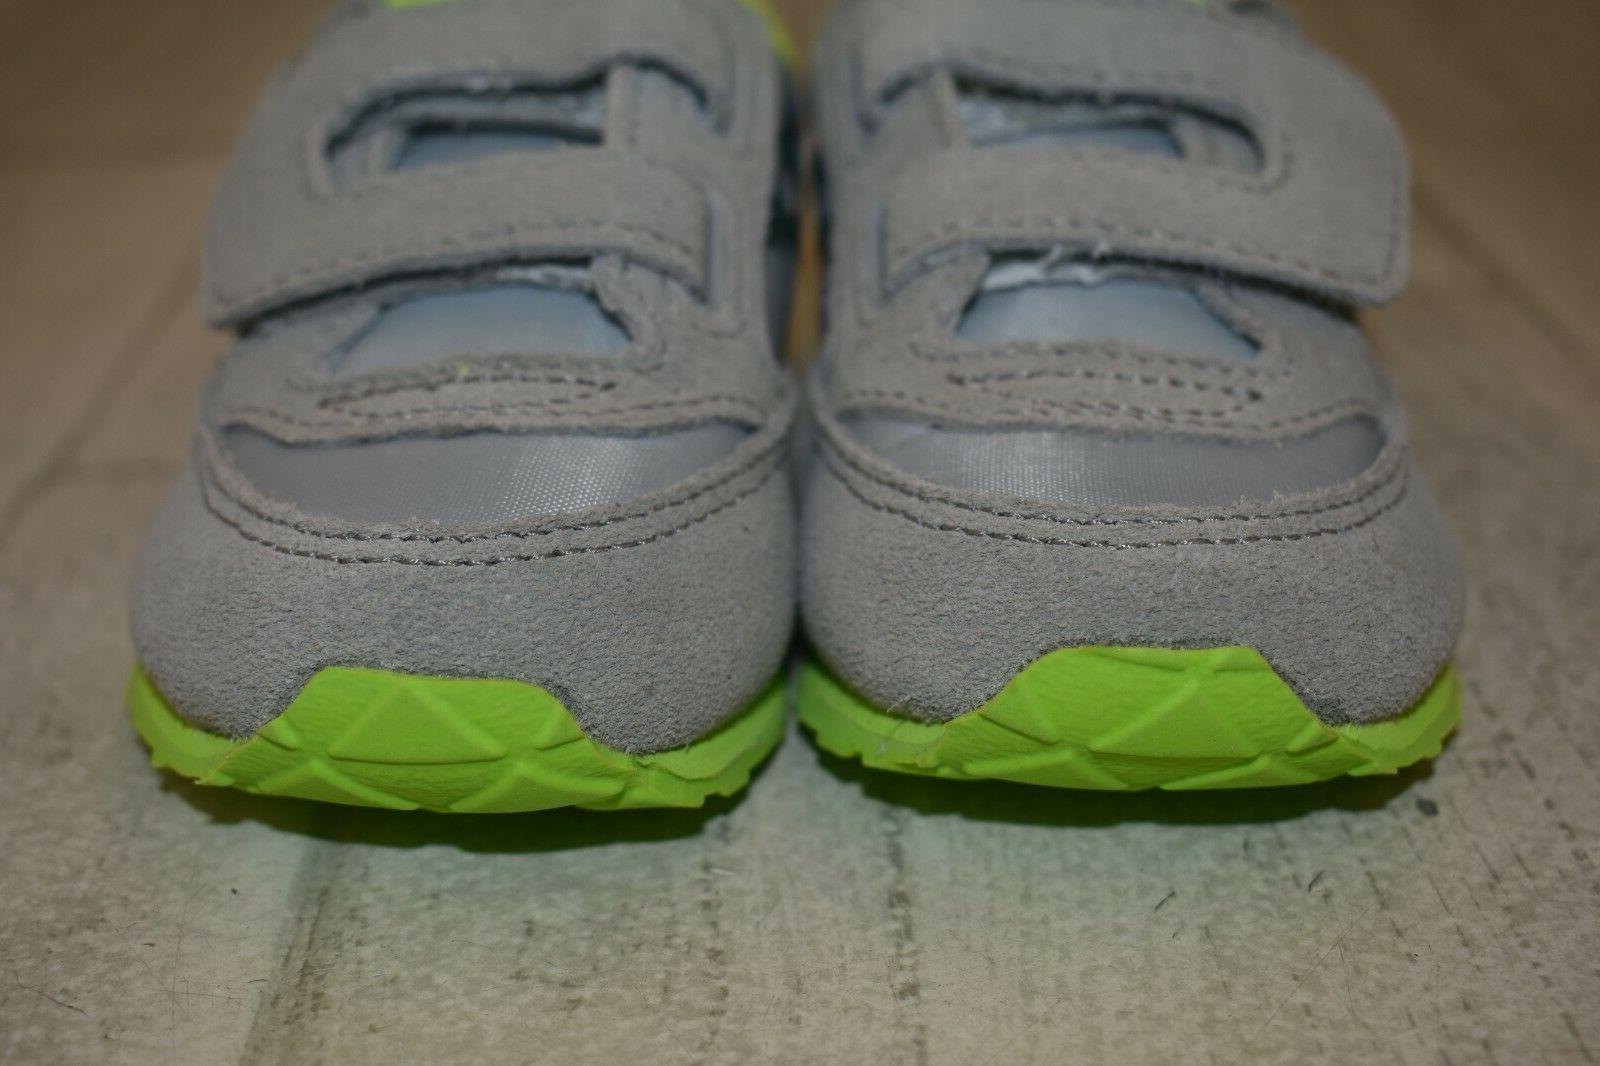 **Saucony Baby Sneaker Toddler Size 6M, Grey/Lime